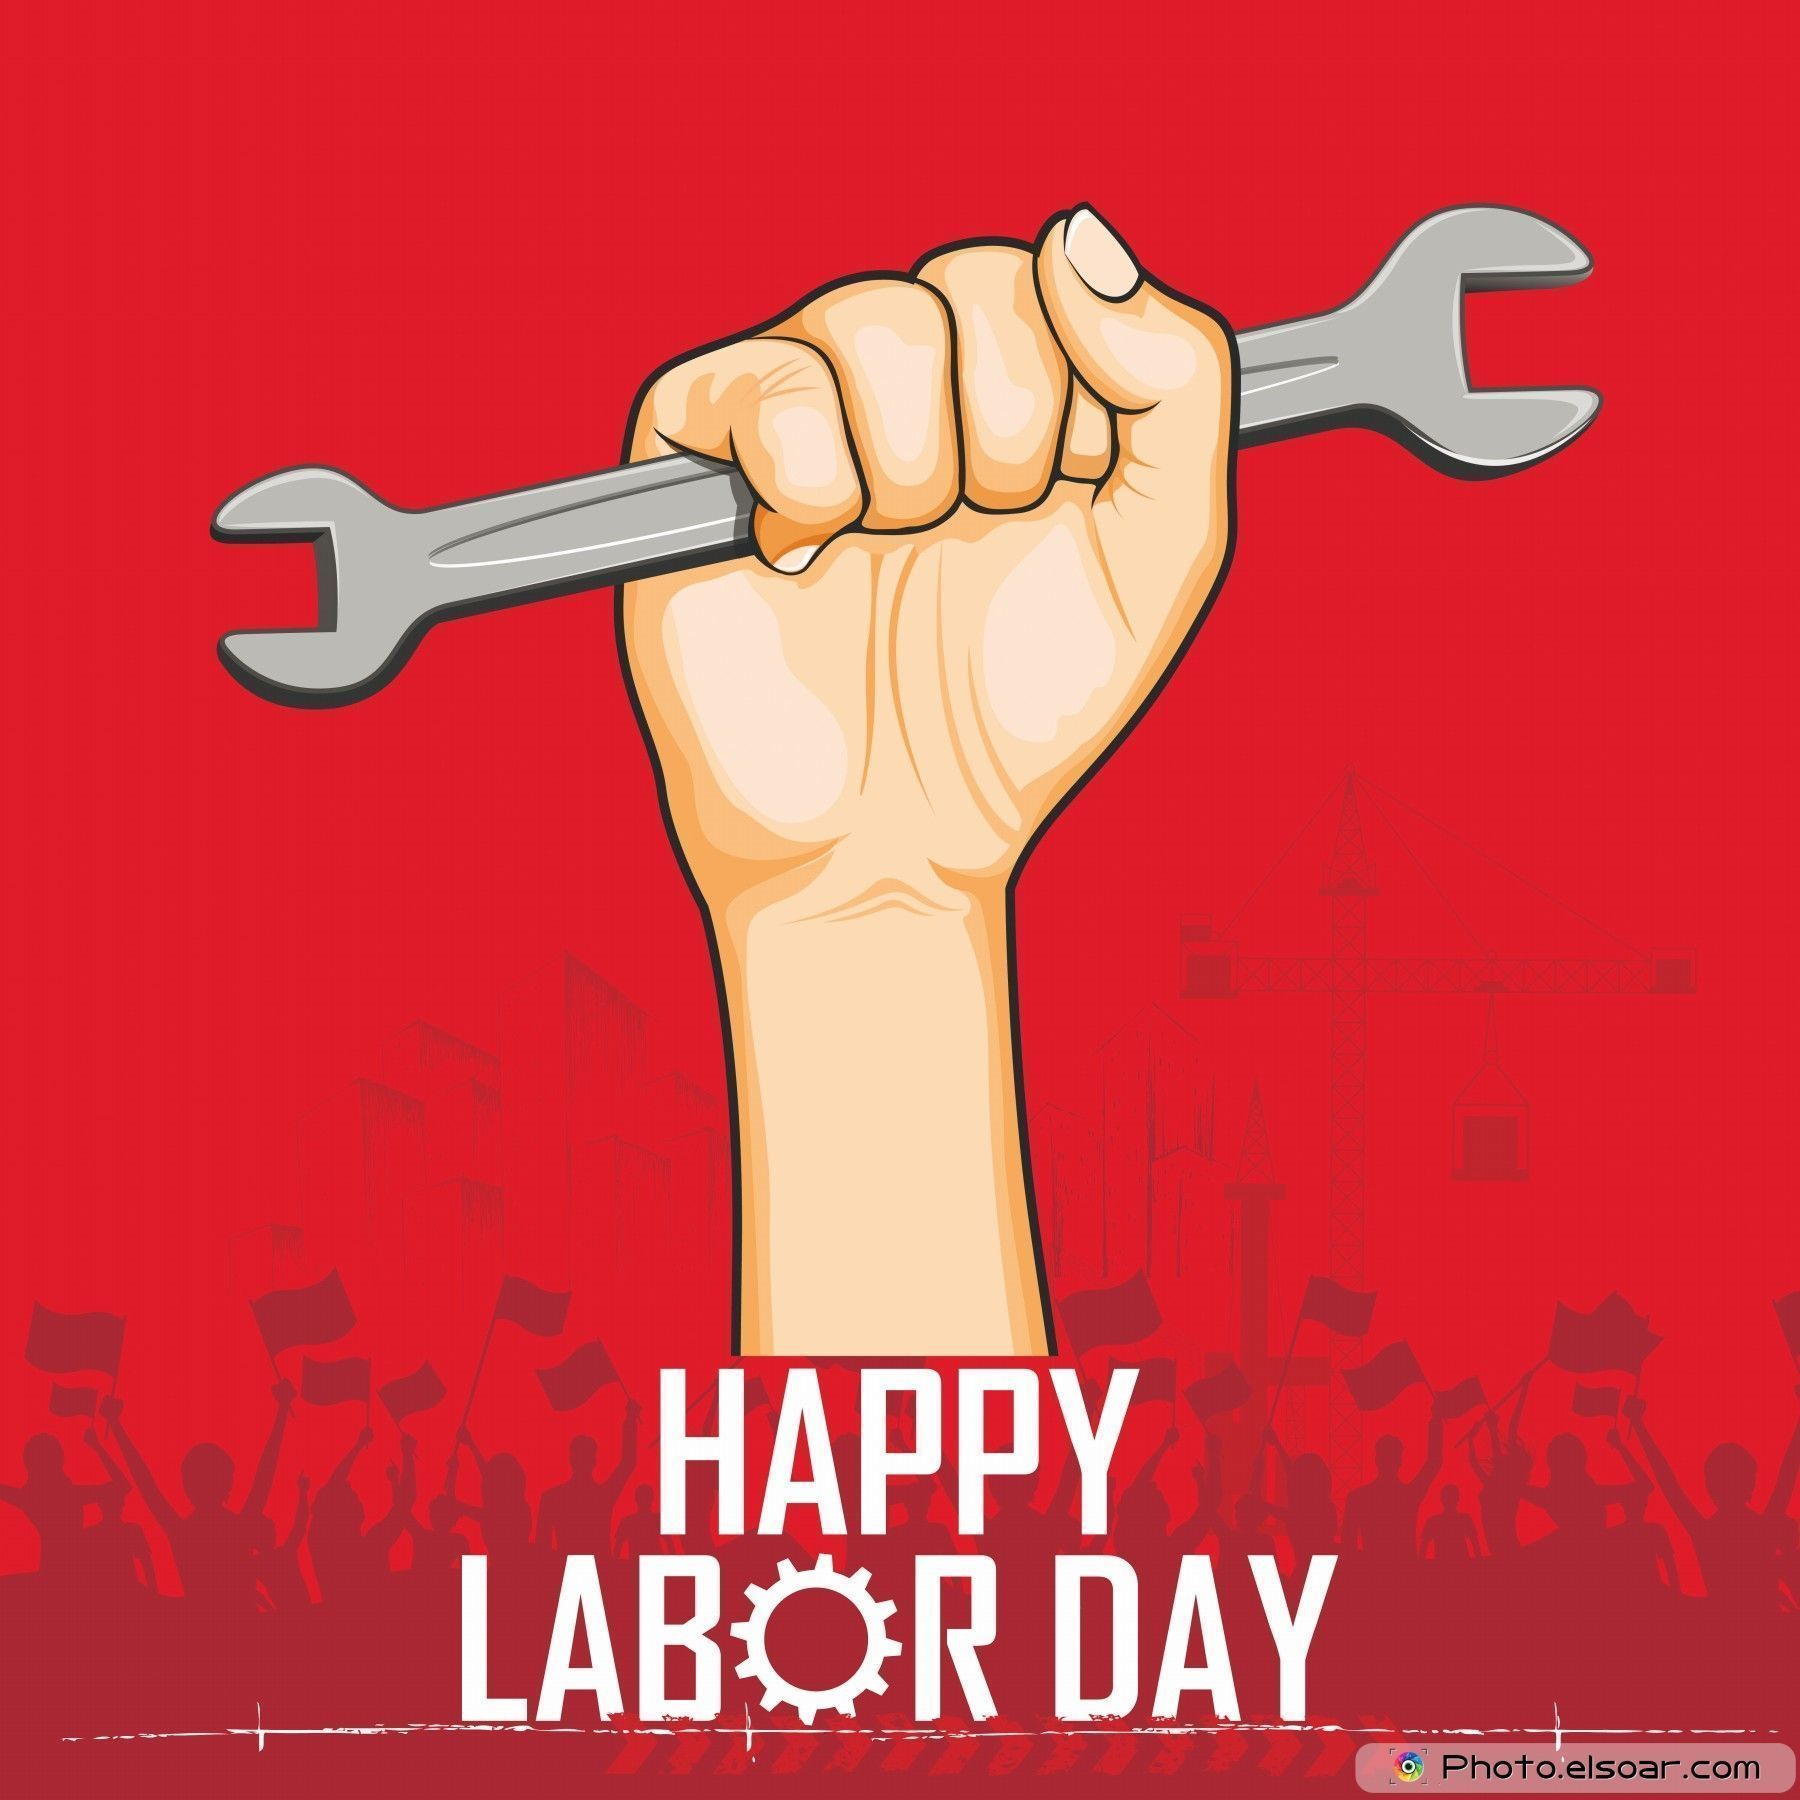 Happy Labor Day labor day happy labor day labor day pictures labor day quotes happy labor day quotes labor day images #labordayquotes Happy Labor Day labor day happy labor day labor day pictures labor day quotes happy labor day quotes labor day images #labordayquotes Happy Labor Day labor day happy labor day labor day pictures labor day quotes happy labor day quotes labor day images #labordayquotes Happy Labor Day labor day happy labor day labor day pictures labor day quotes happy labor day quot #labordayquotes